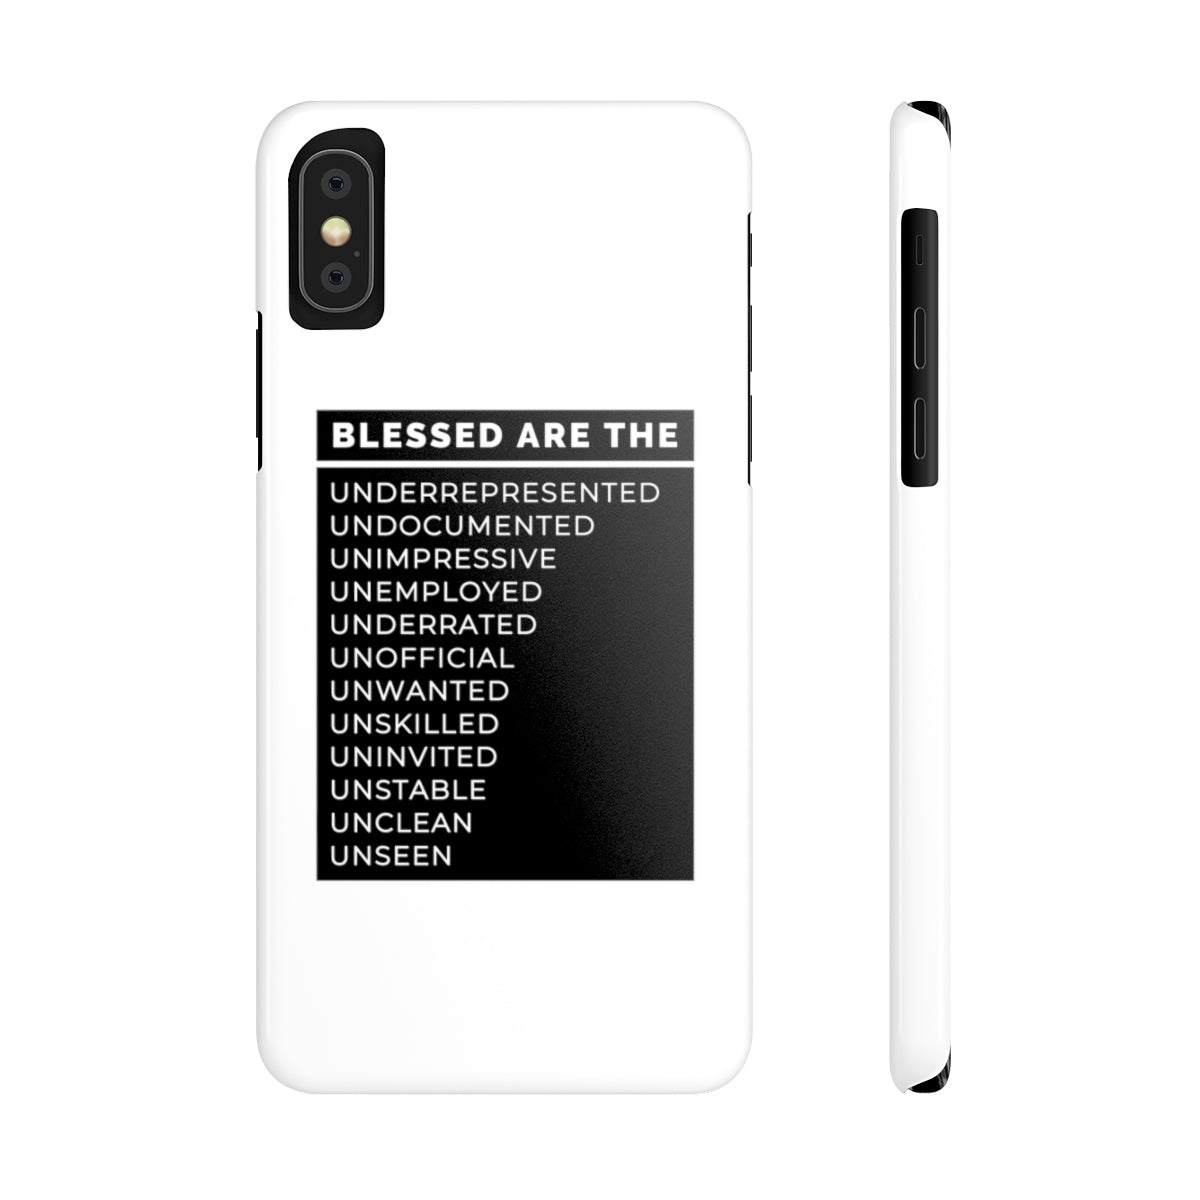 Blessed Are The Case Mate Slim Phone Cases